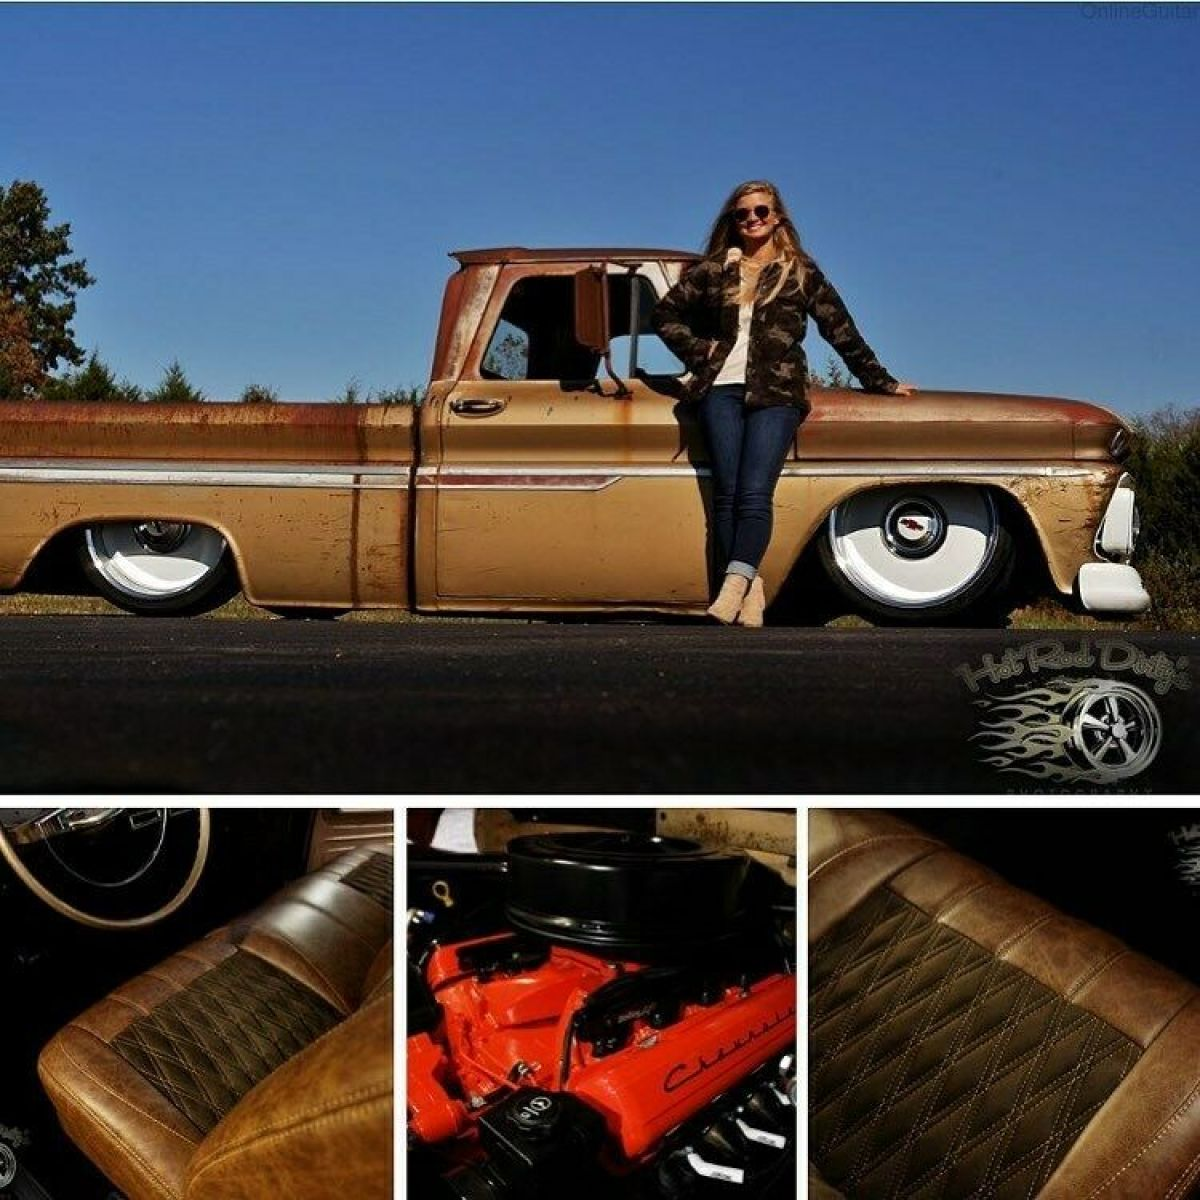 1966 Chevrolet C-10 Hot Rat Rod Chevy Pickup Truck Fleetside LSx